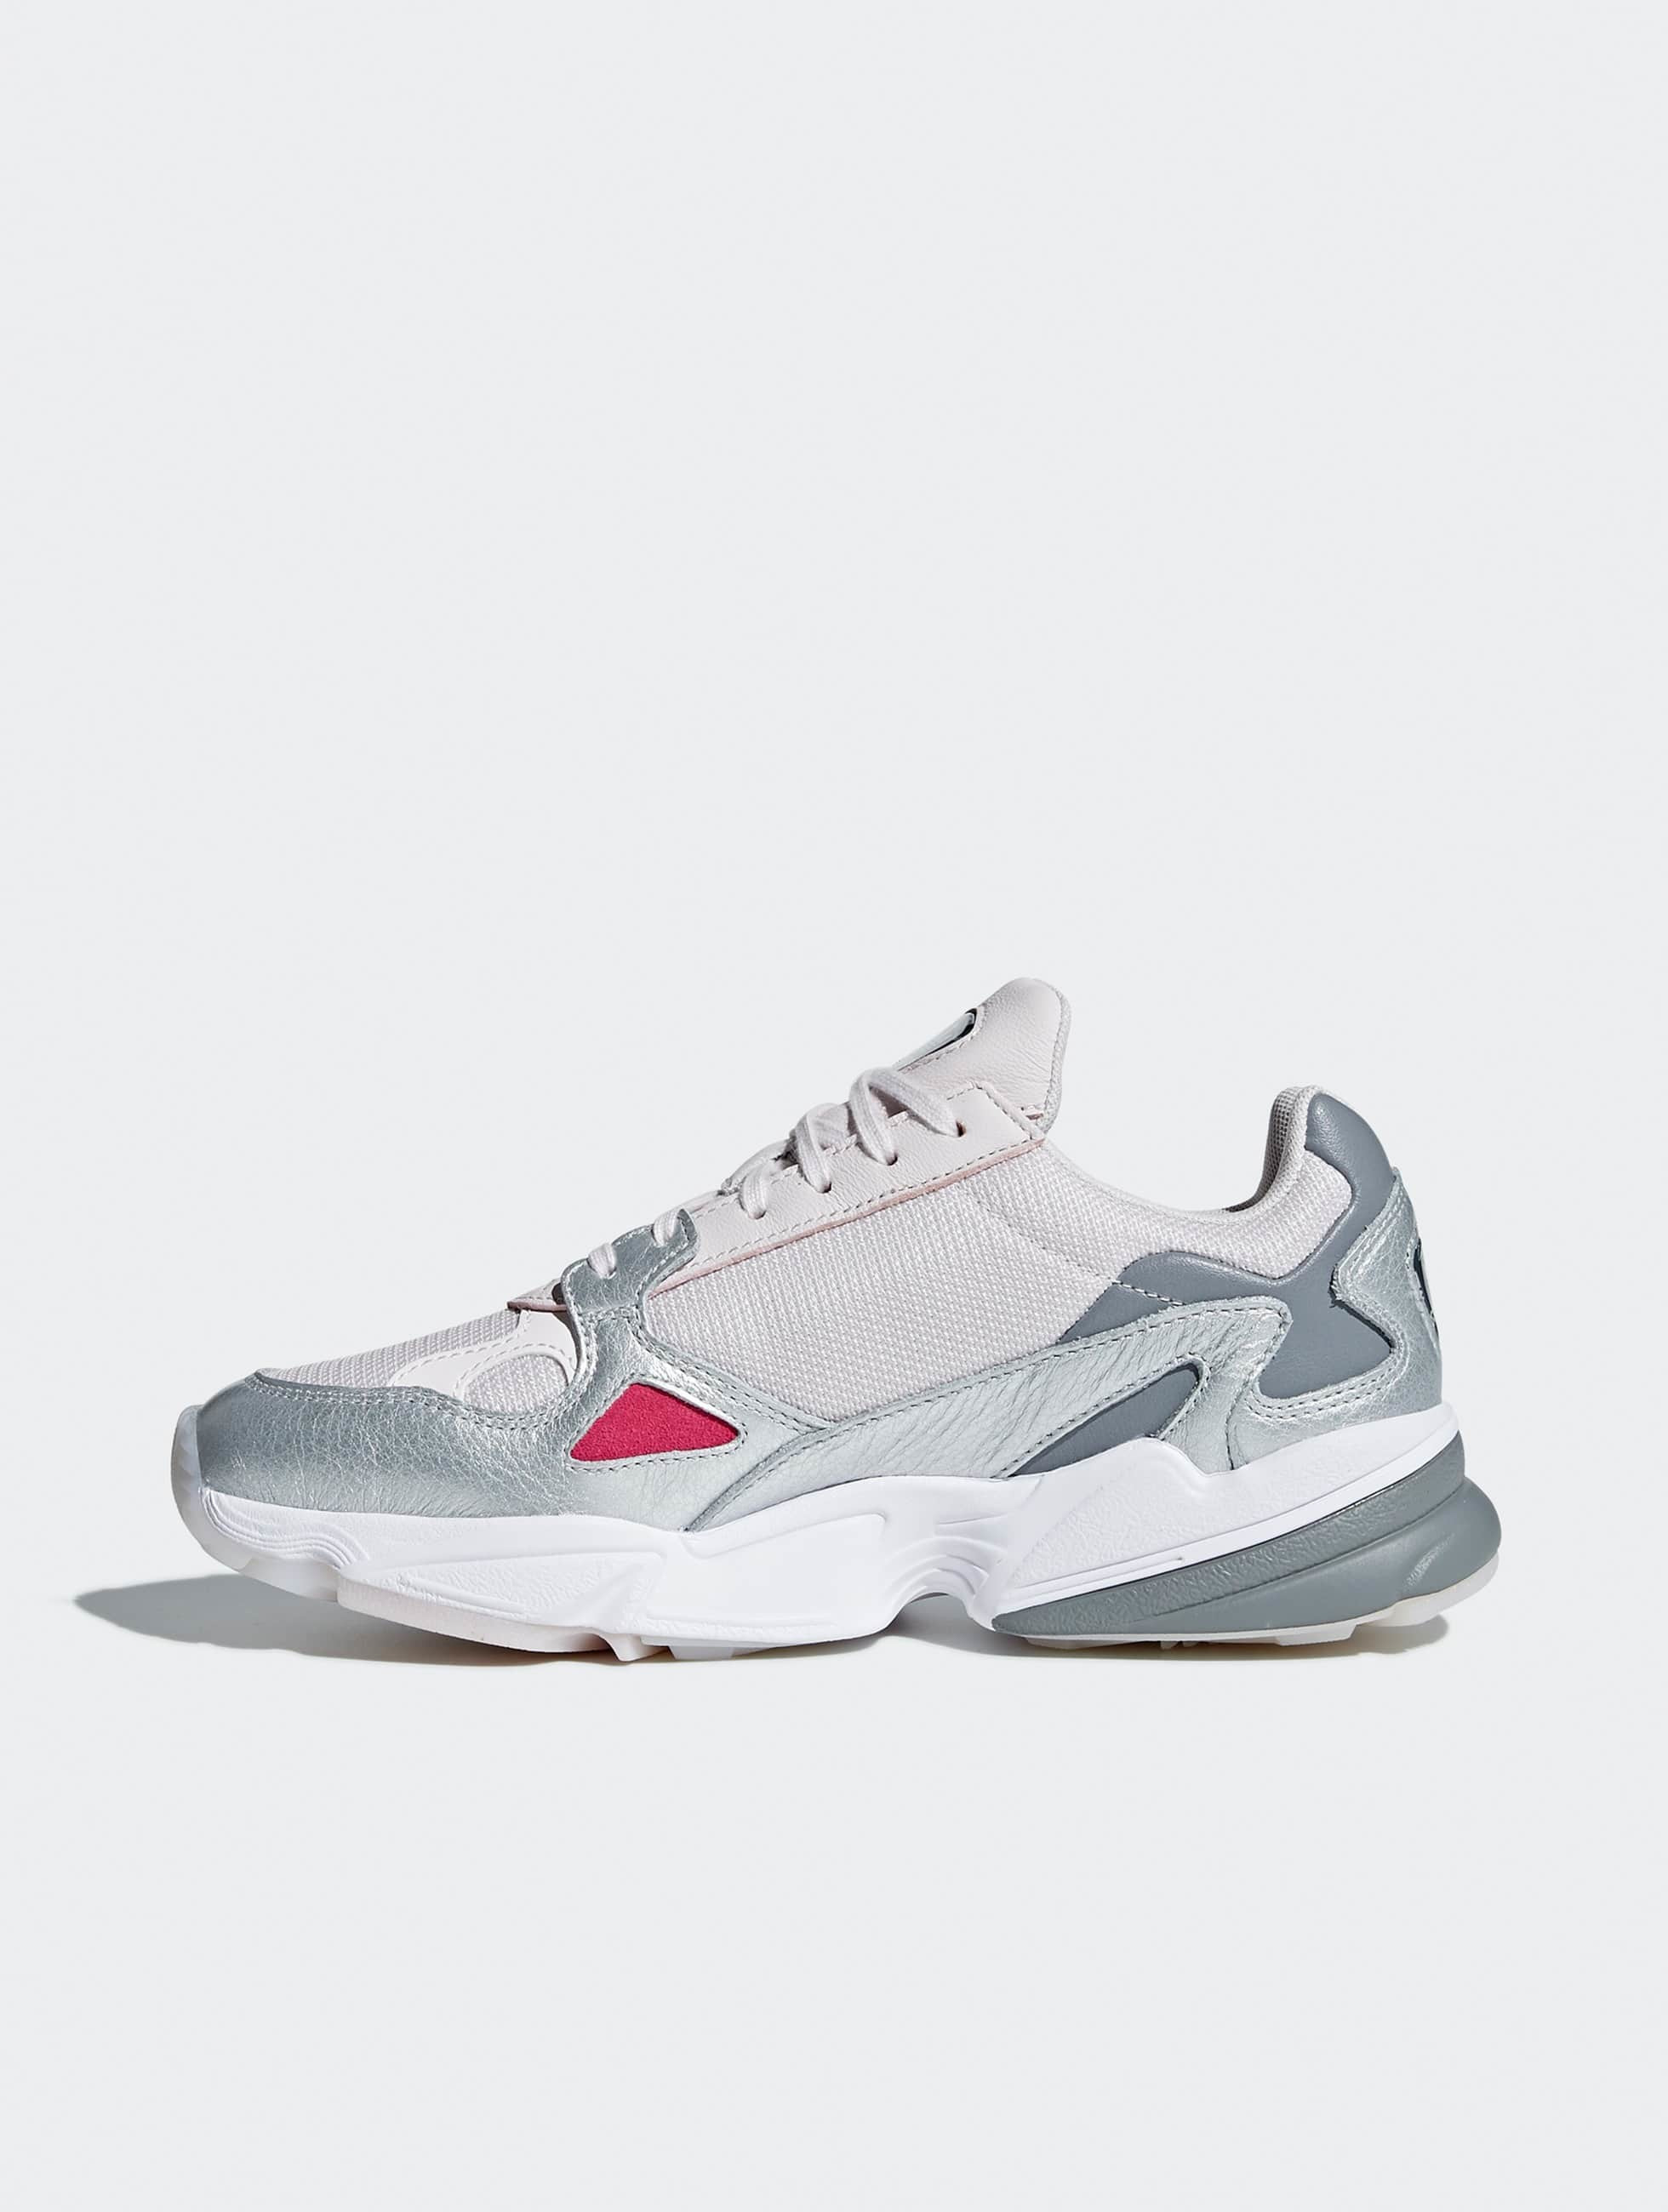 Adidas Originals Falcon W Sneakers Orchid Tint